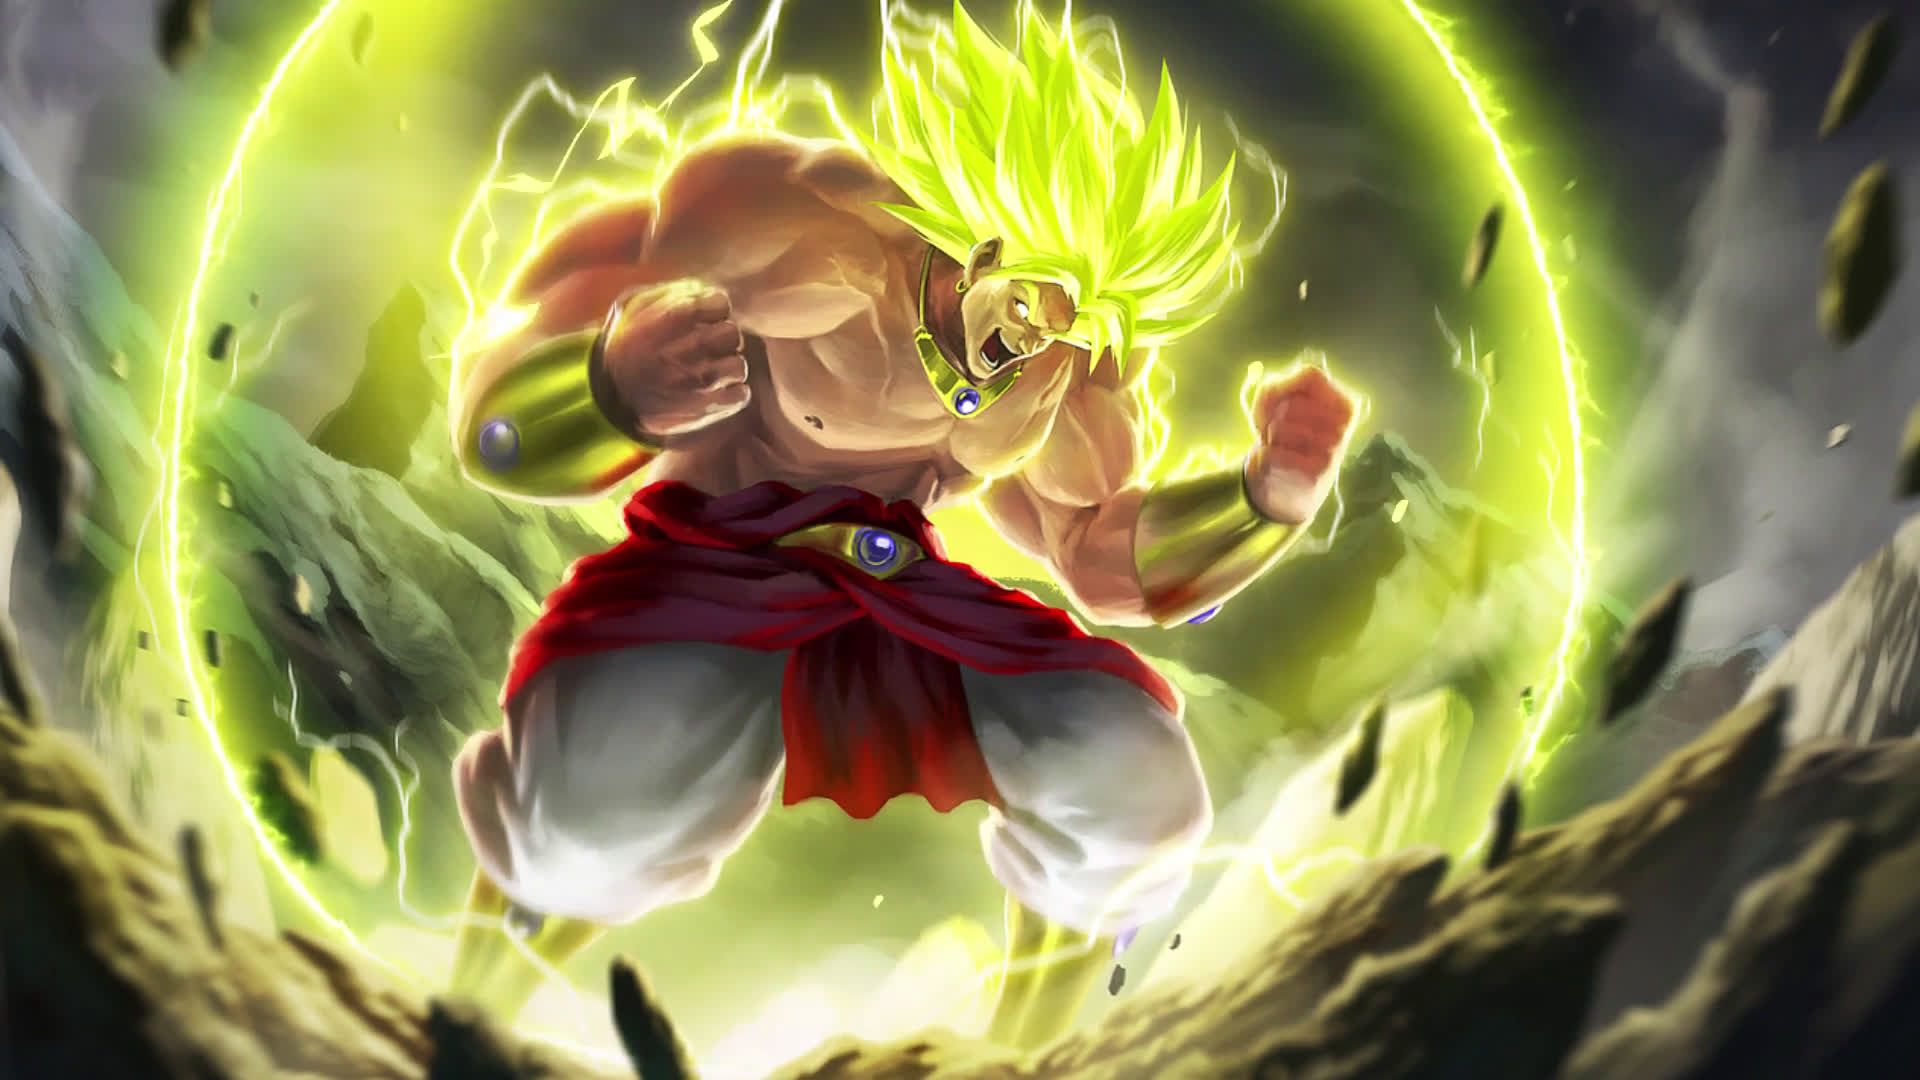 Broly Wallpapers Top Free Broly Backgrounds Wallpaperaccess